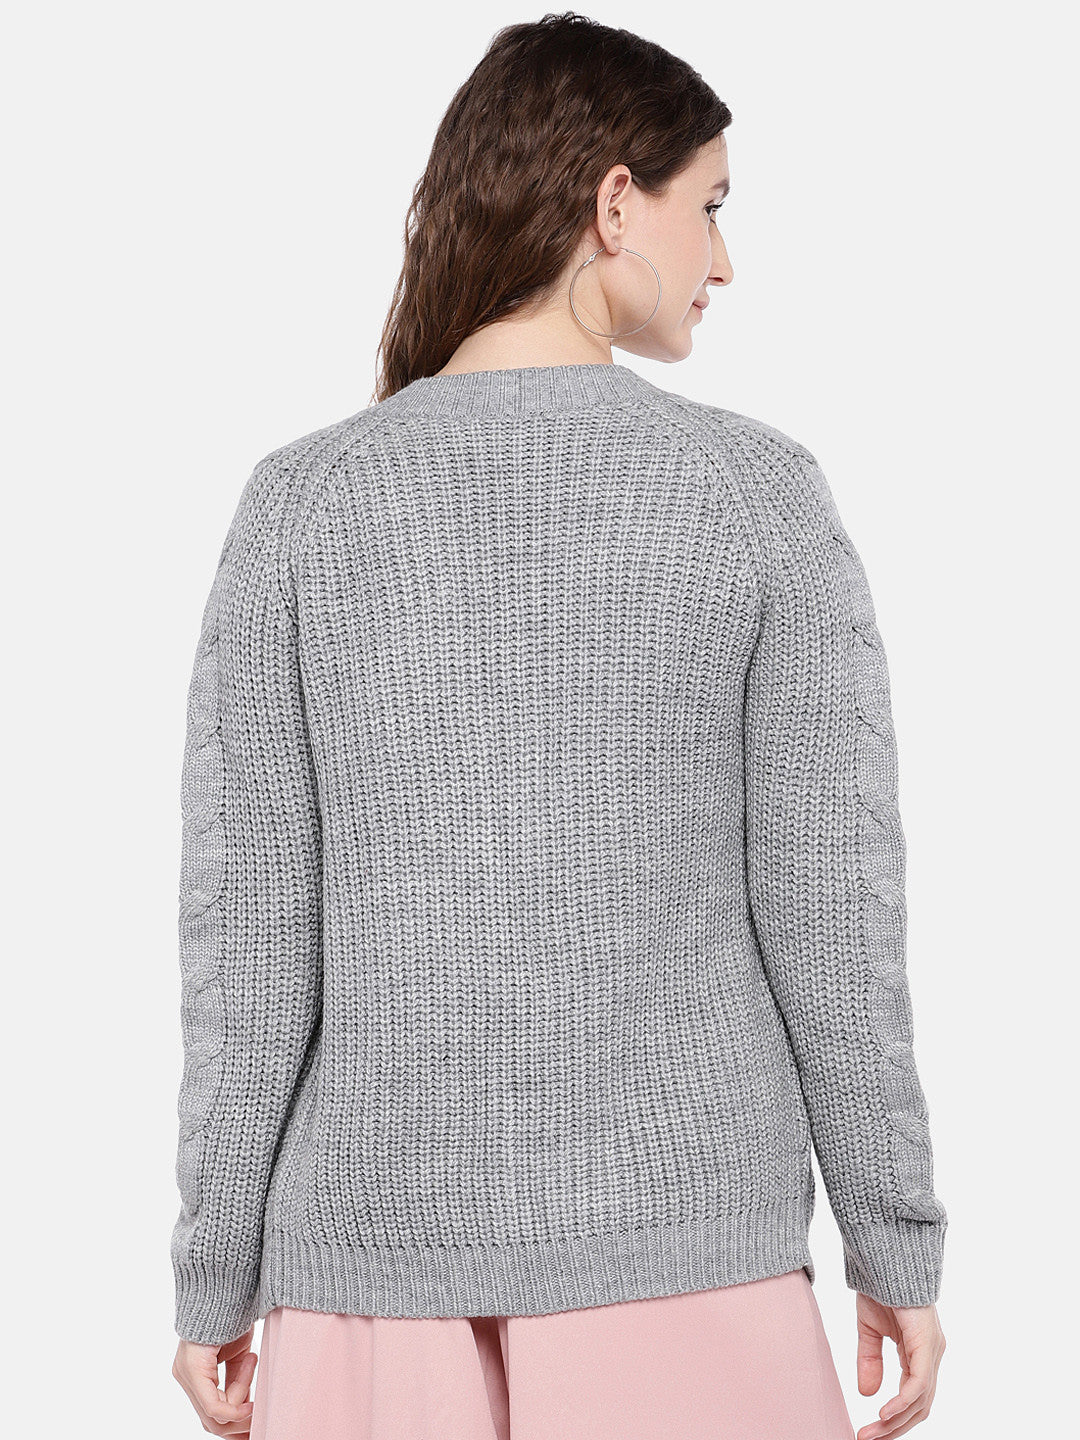 Grey Self Design Open Front Shrug-3